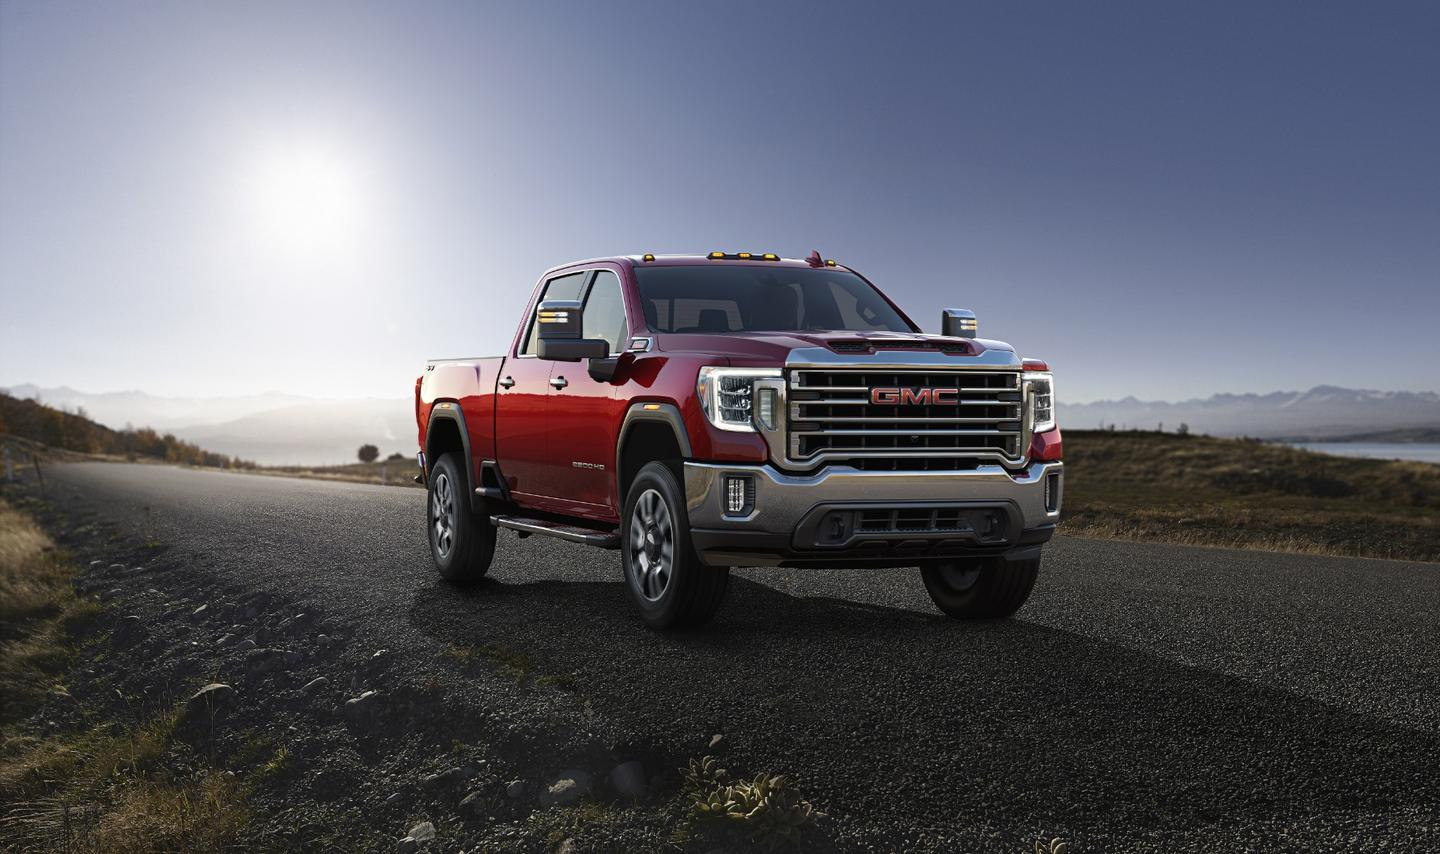 2020 GMC Sierra HD: incorporates transparent trailer tech